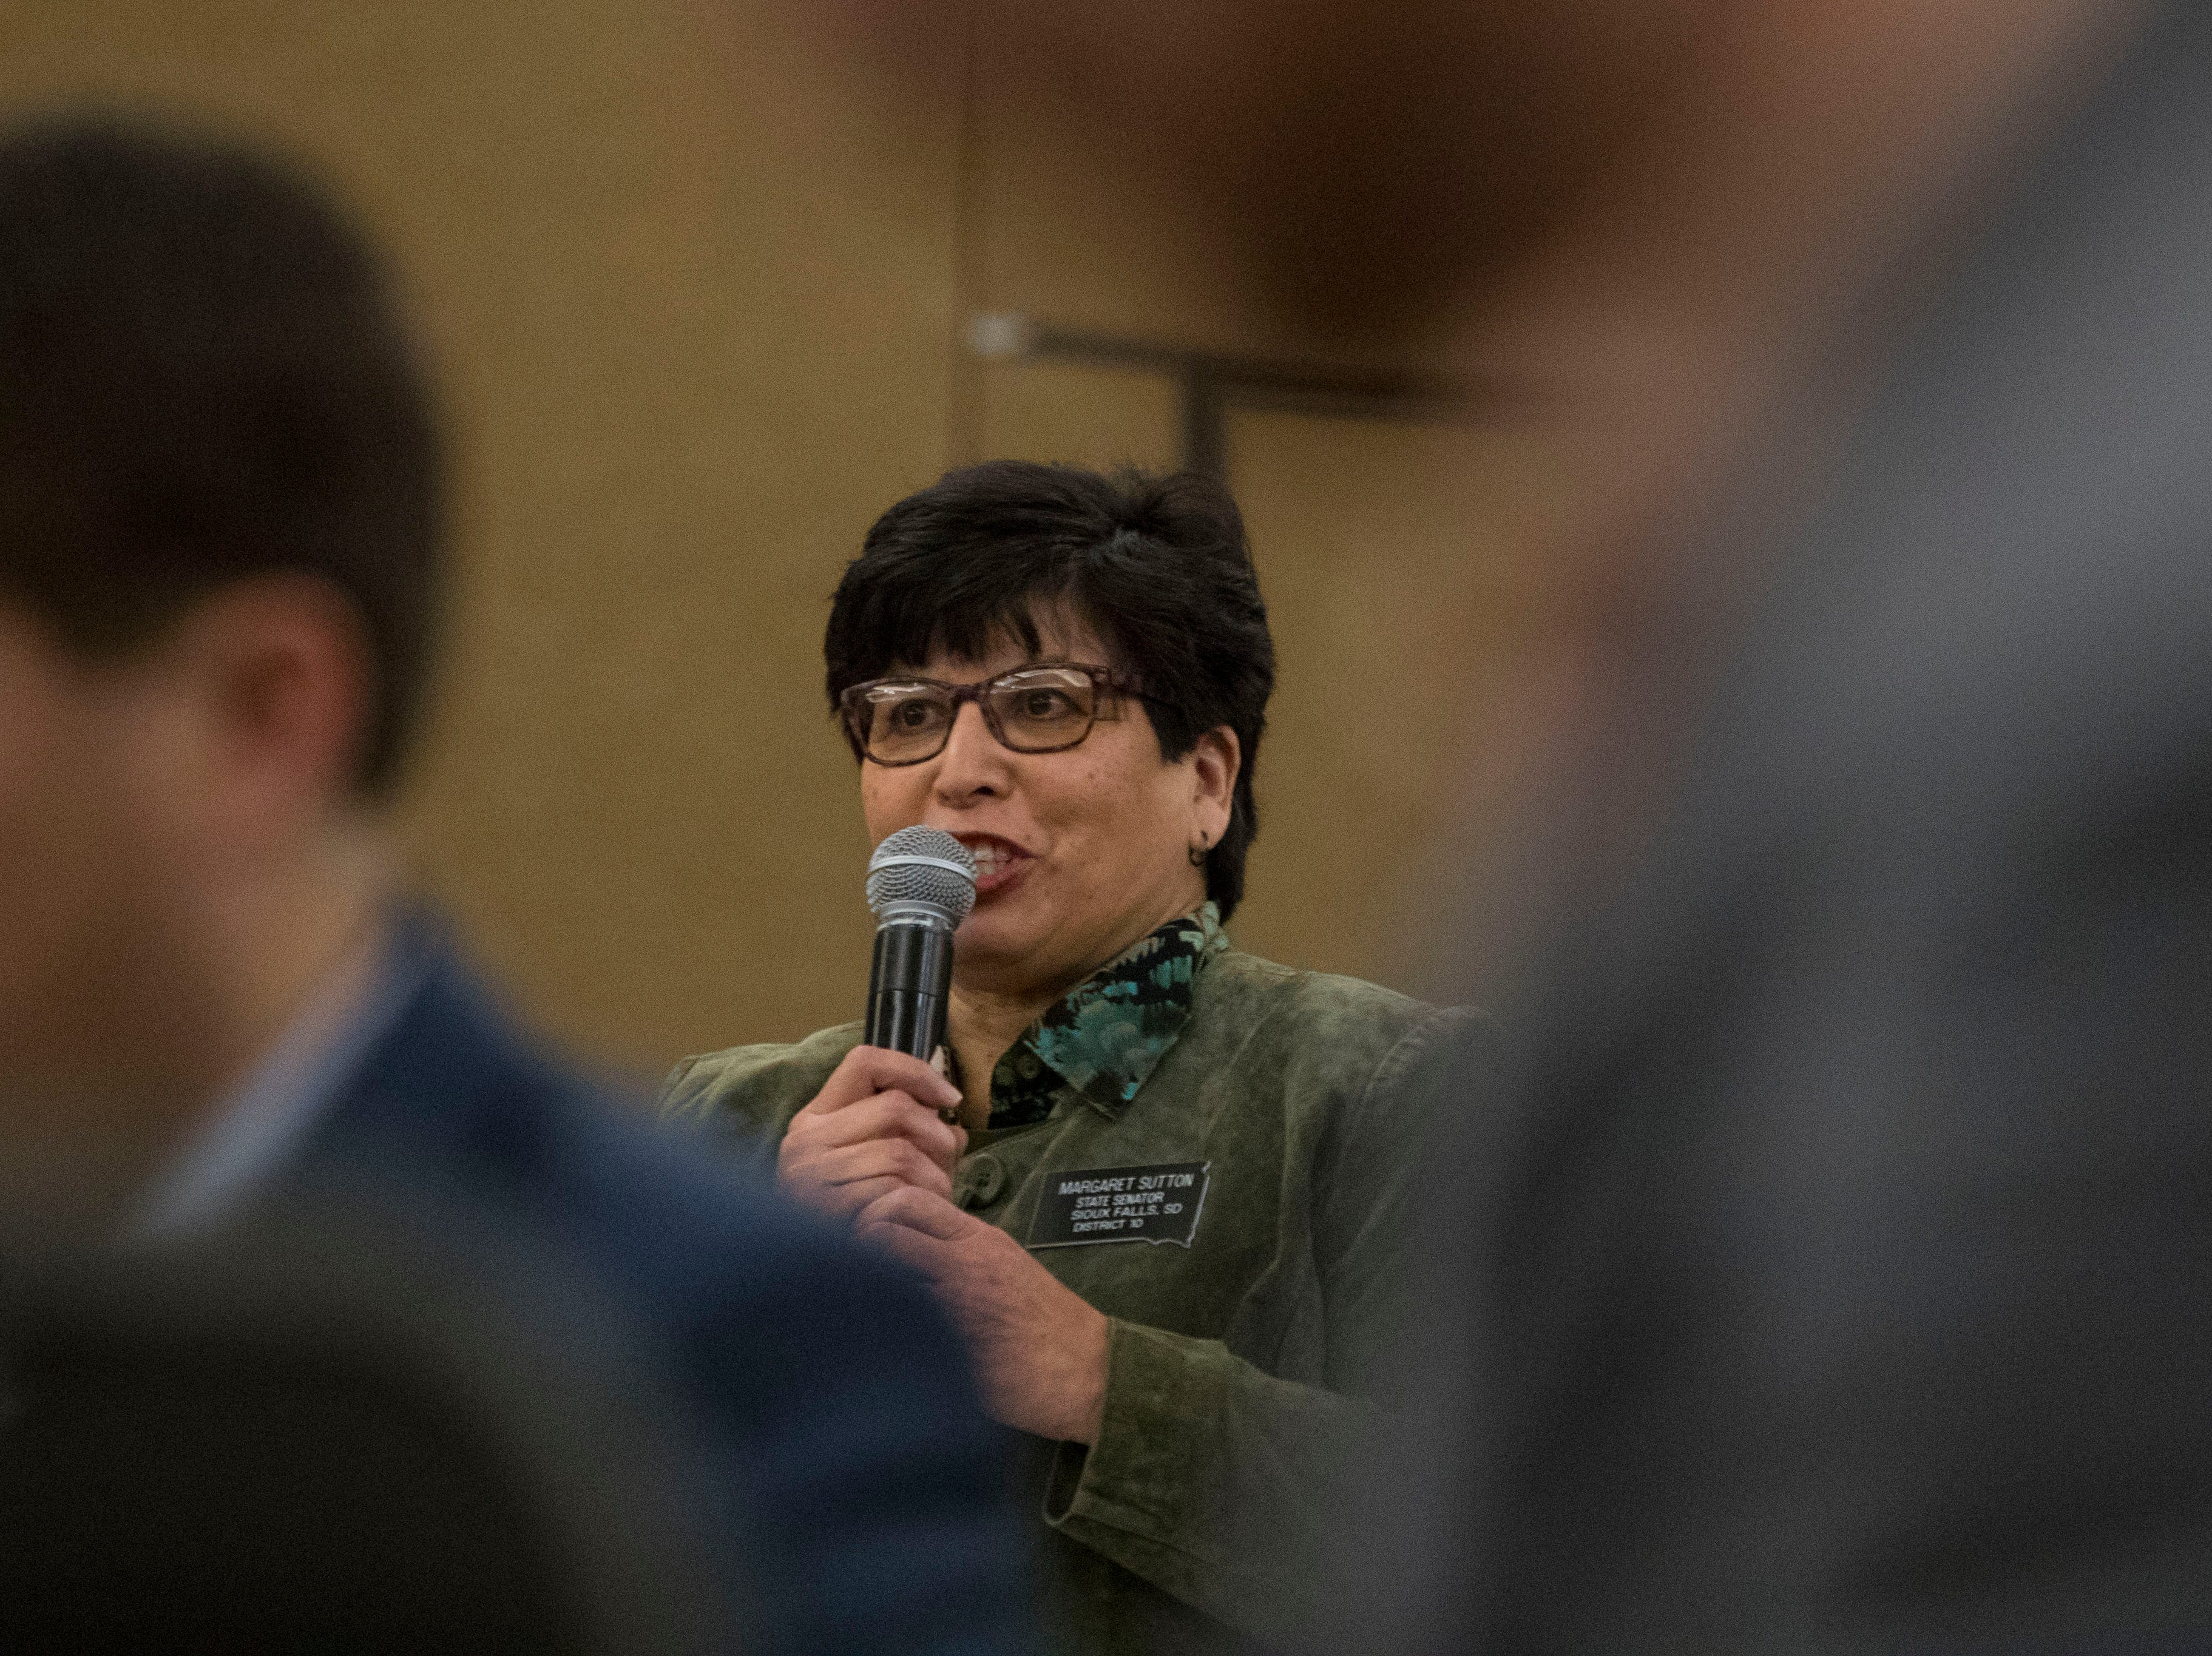 Senator Margaret Sutton, District 10, speaks at the Chamber of Commerce legislative breakfast, Thursday, Jan. 3, 2019 at the Best Western Plus Ramkota Hotel in Sioux Falls, S.D.